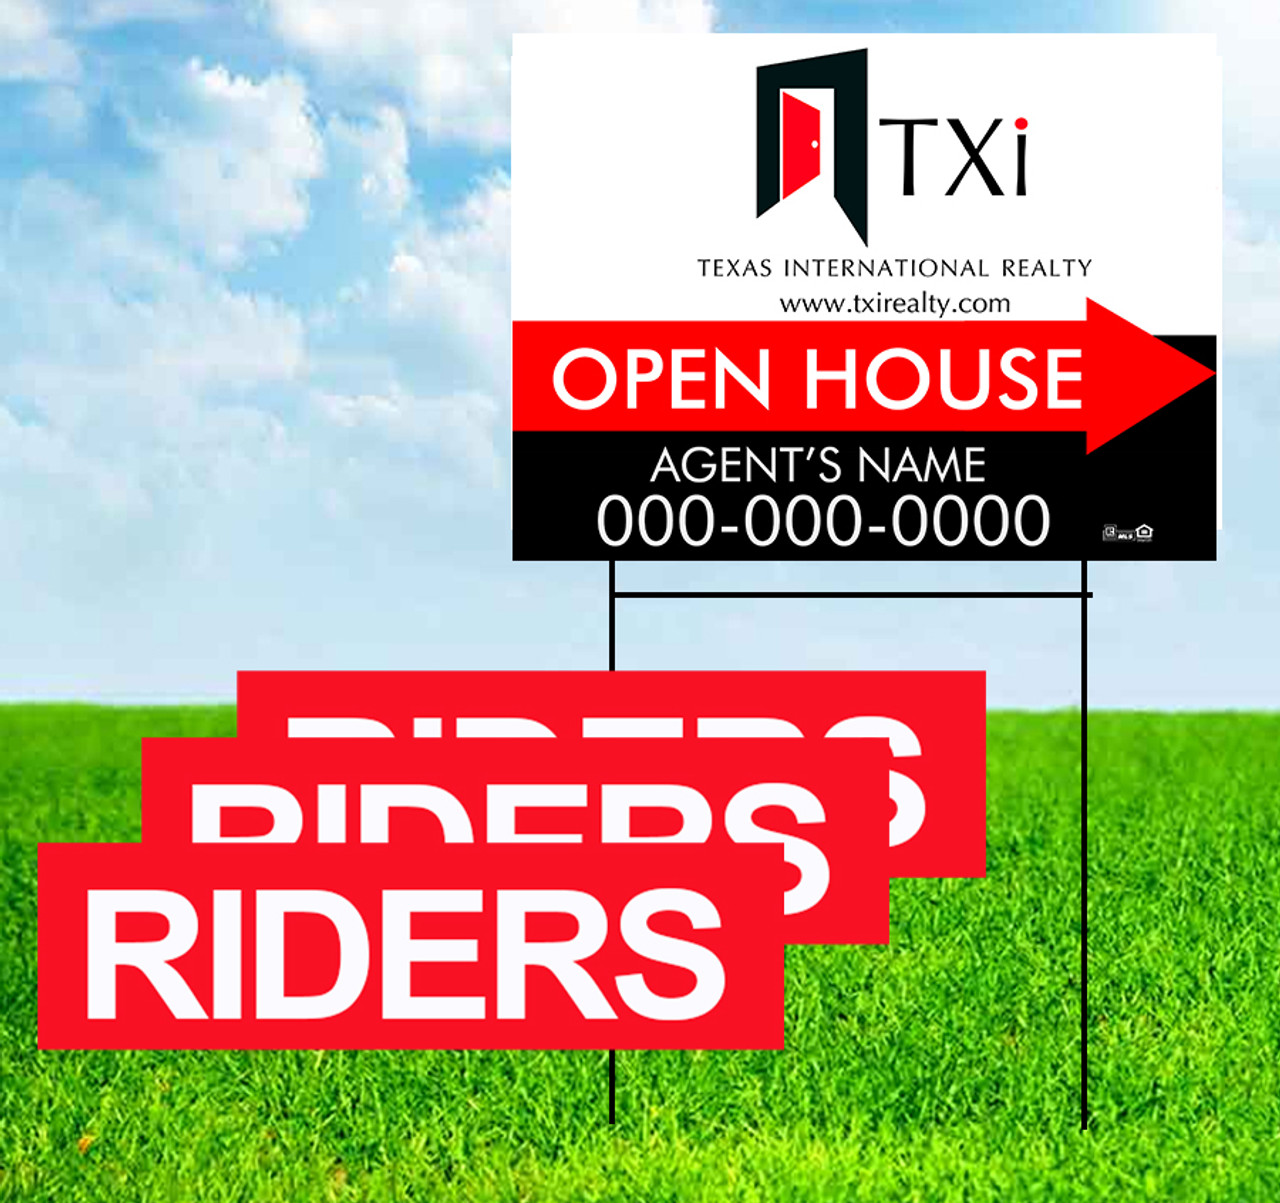 TXI Open House and Riders